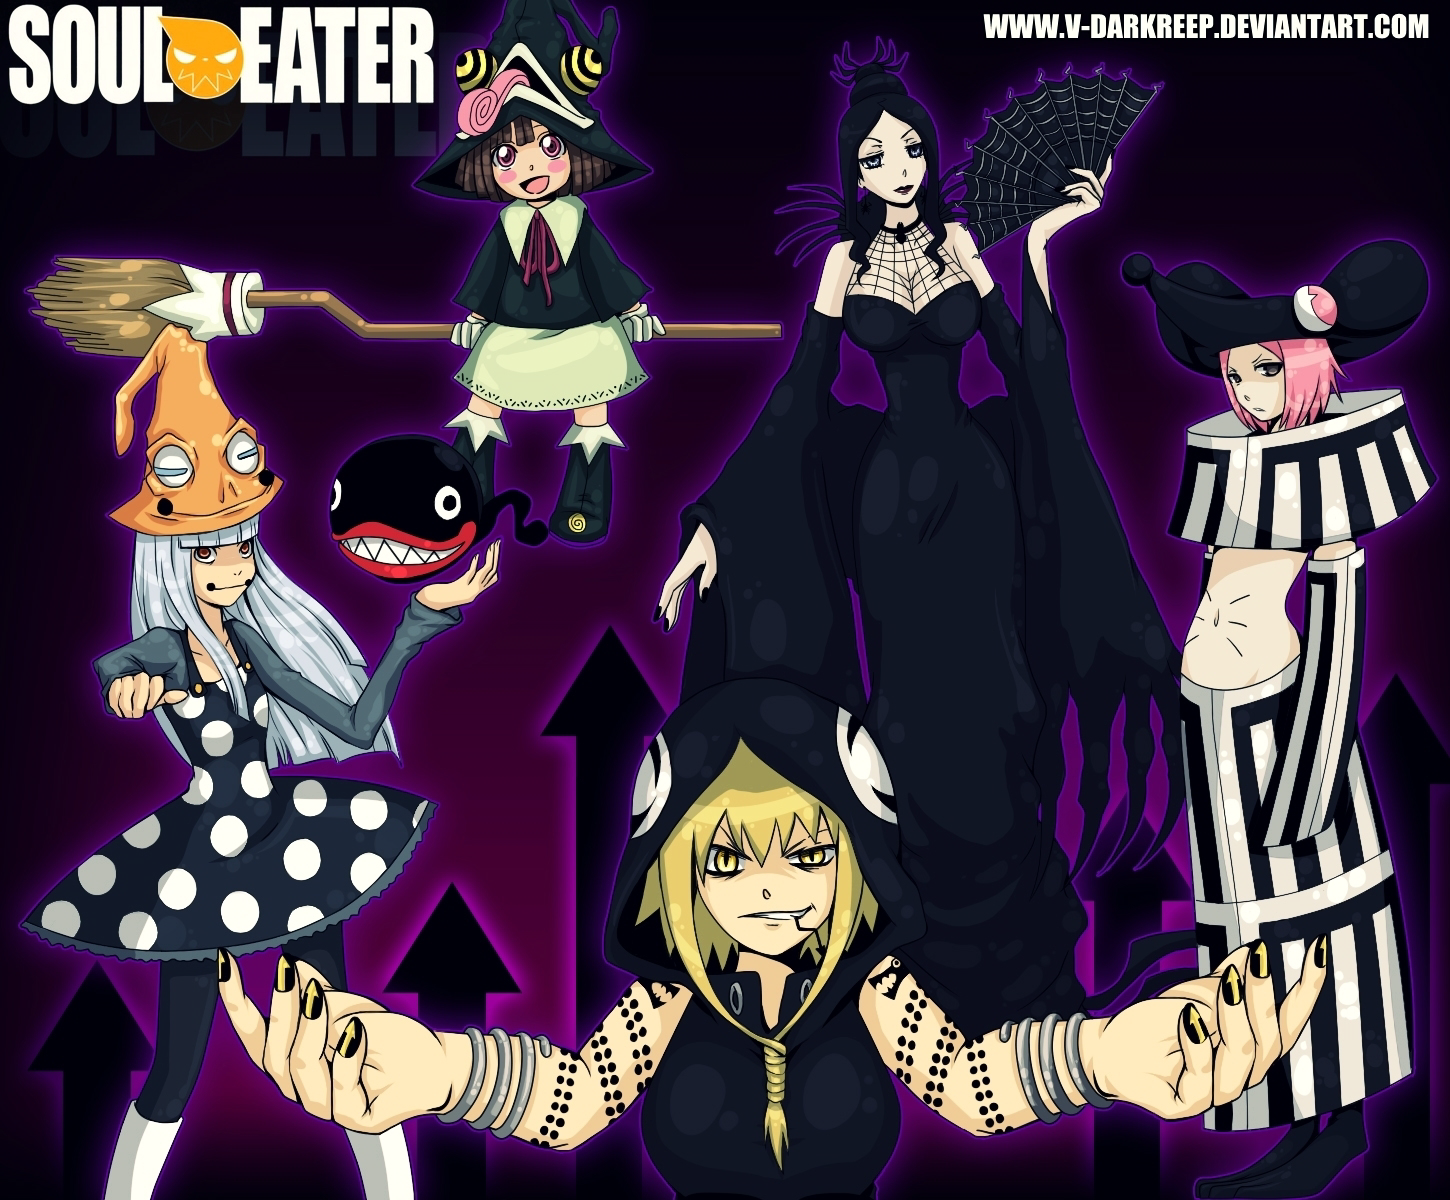 Soul Eater Witches by xDarkreepxSoul Eater Witch Soul